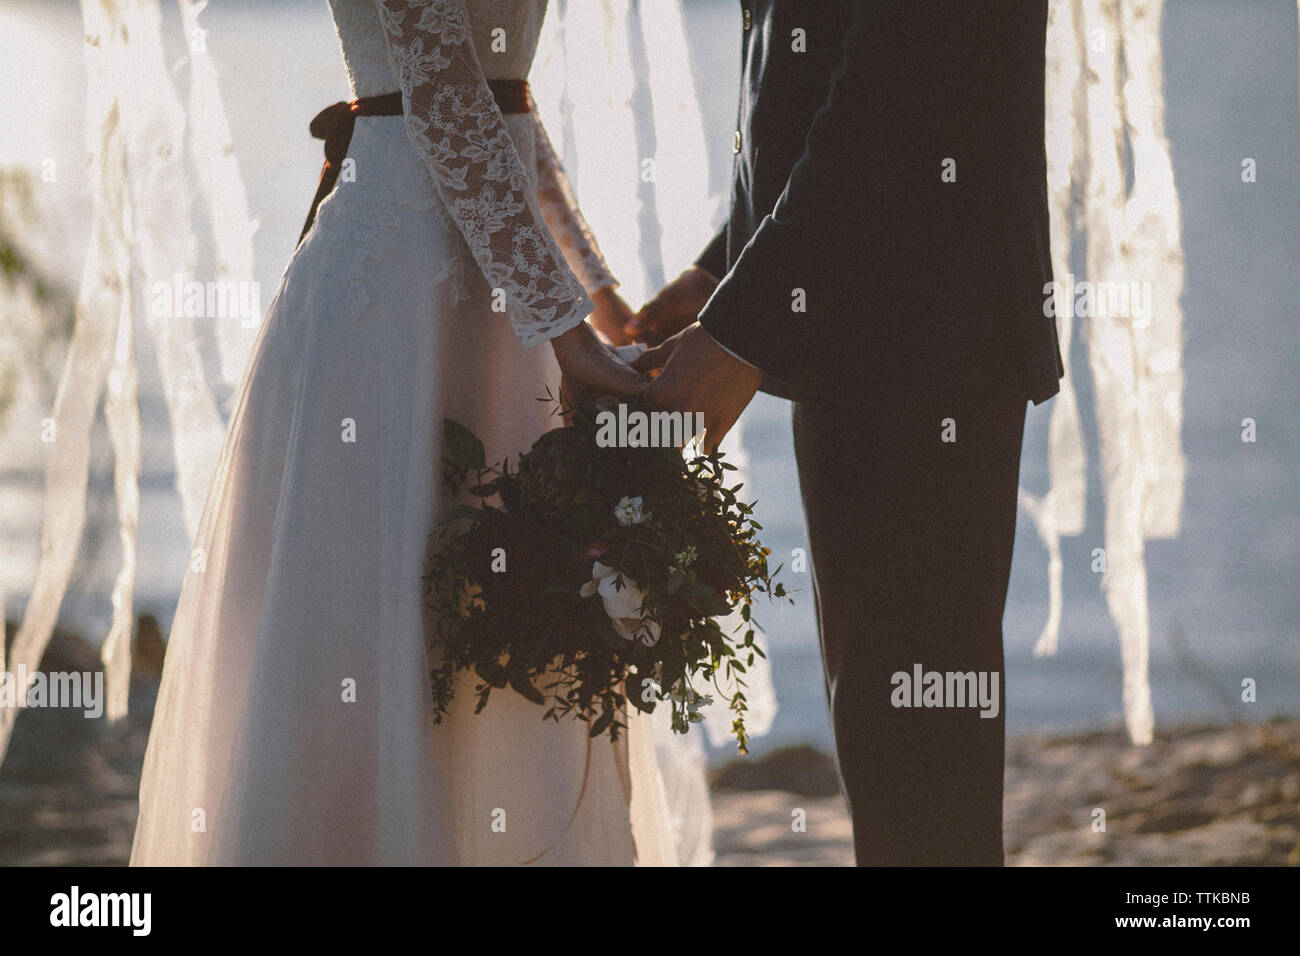 Midsection of wedding couple holding bouquet while standing at beach during sunset - Stock Photo